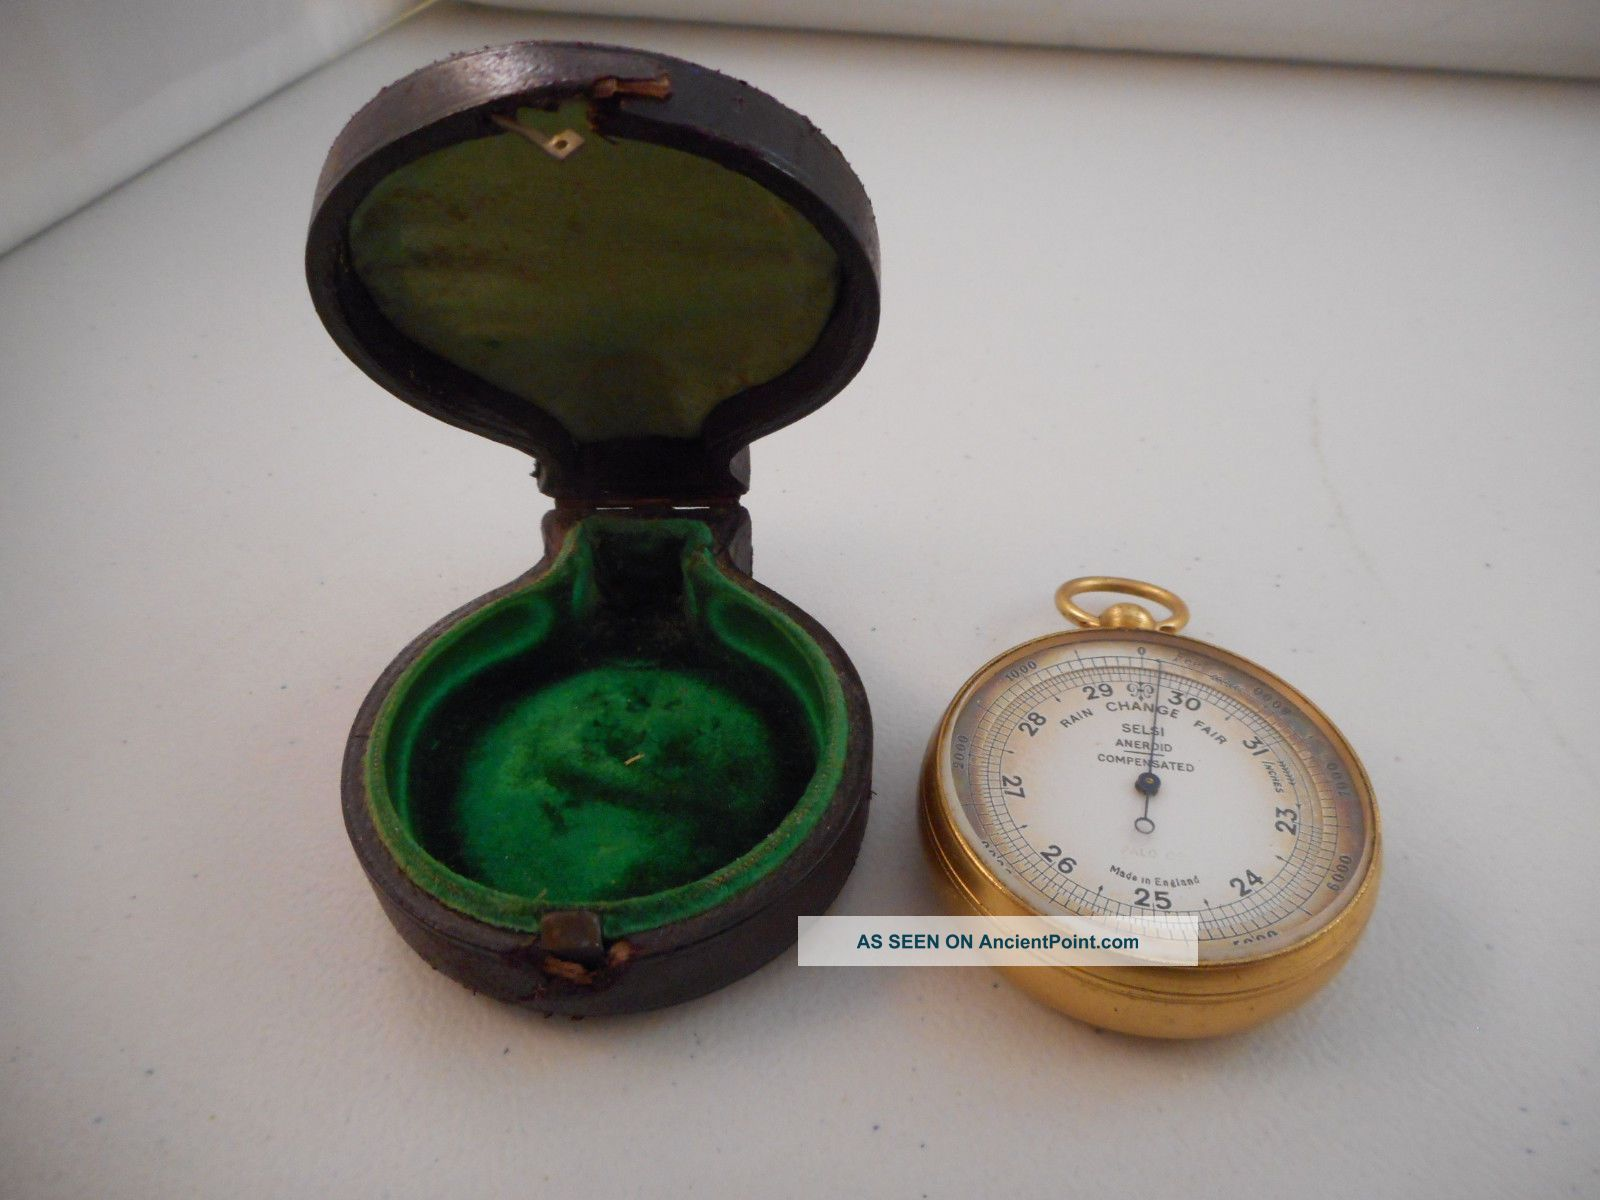 Antique Vintage Pocket Watch Style Barometer W/case - Selsi Aneroid - Palo Co. Barometers photo